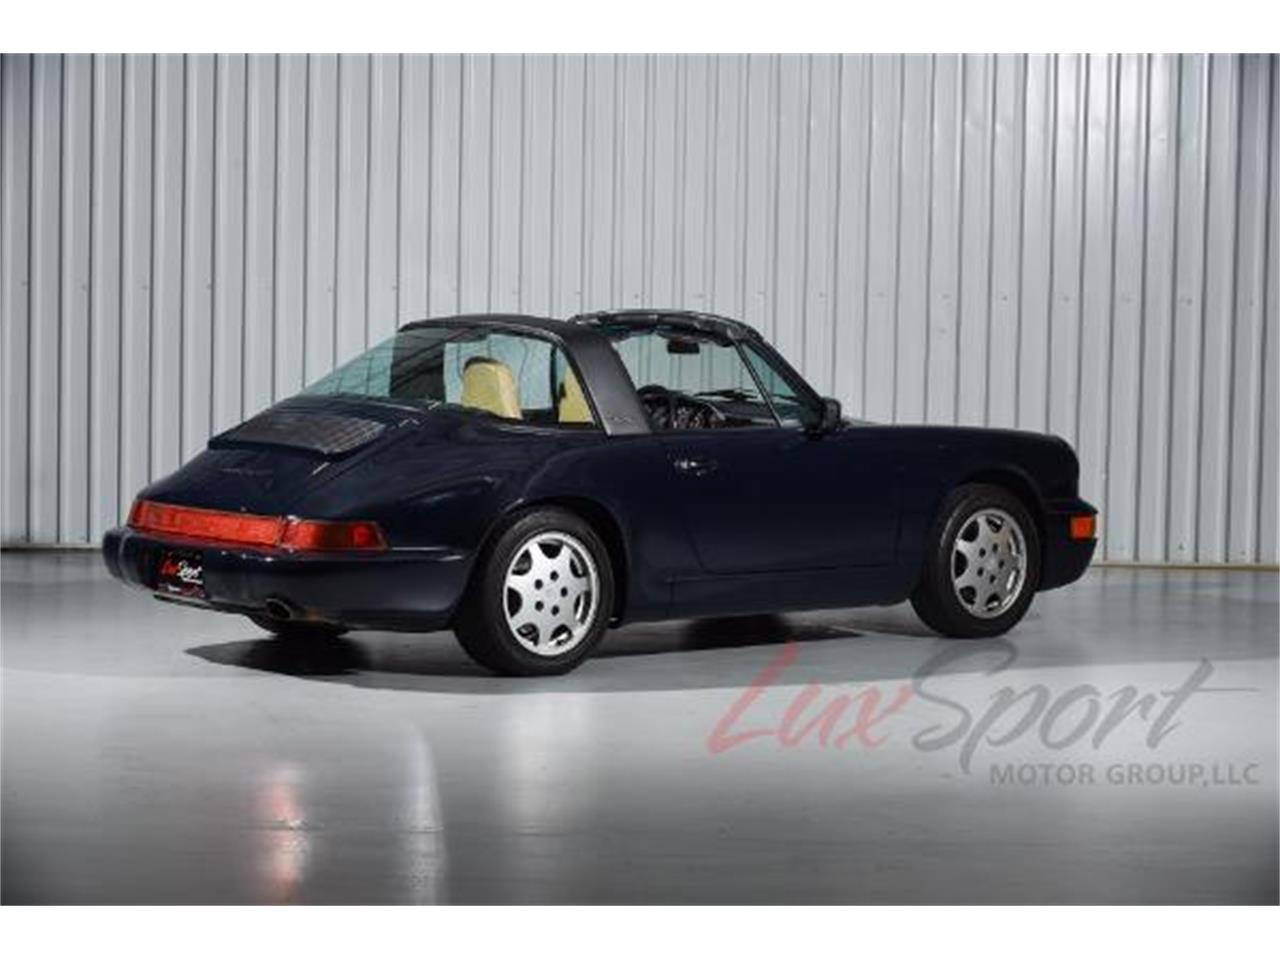 Large Picture of '90 Porsche 964 Carrera 2 Targa located in New Hyde Park New York - $59,995.00 Offered by LuxSport Motor Group, LLC - MNZP